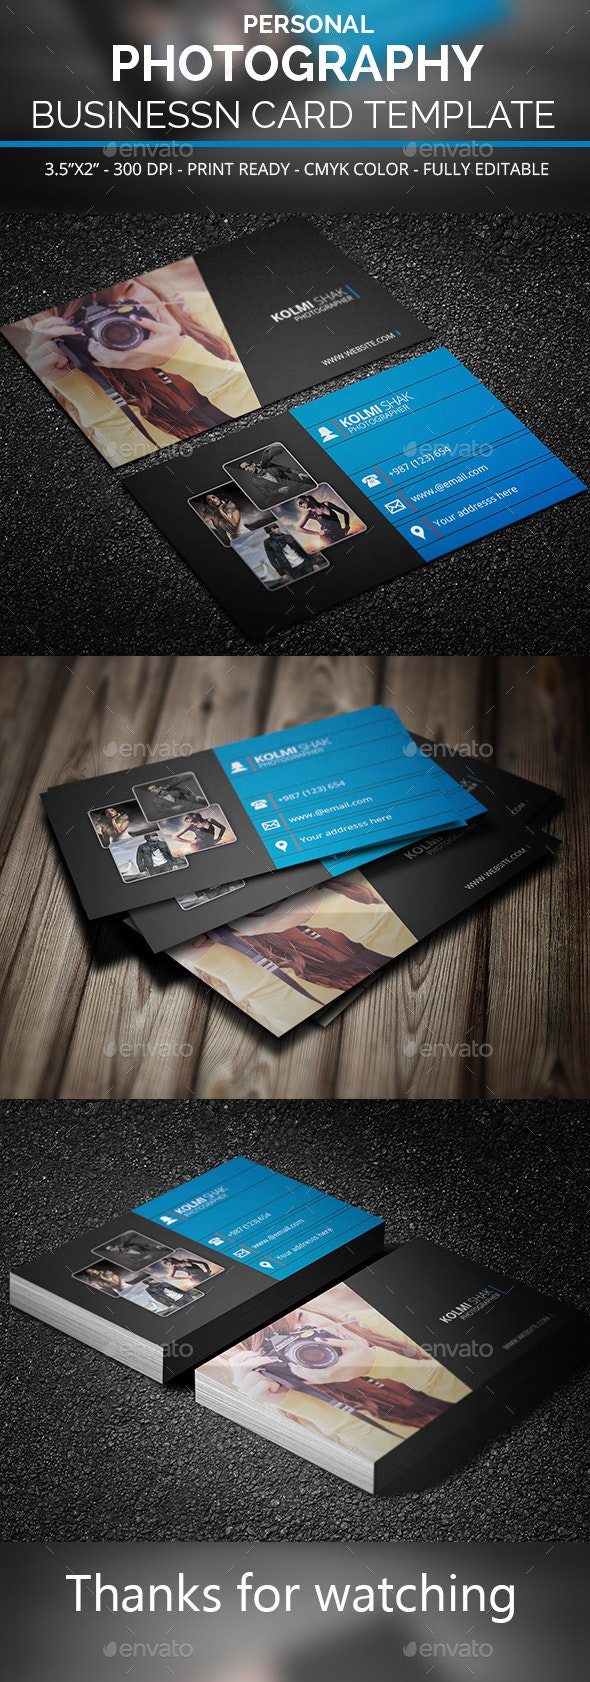 Personal Photography Business Card Template - Business Cards Print Templates